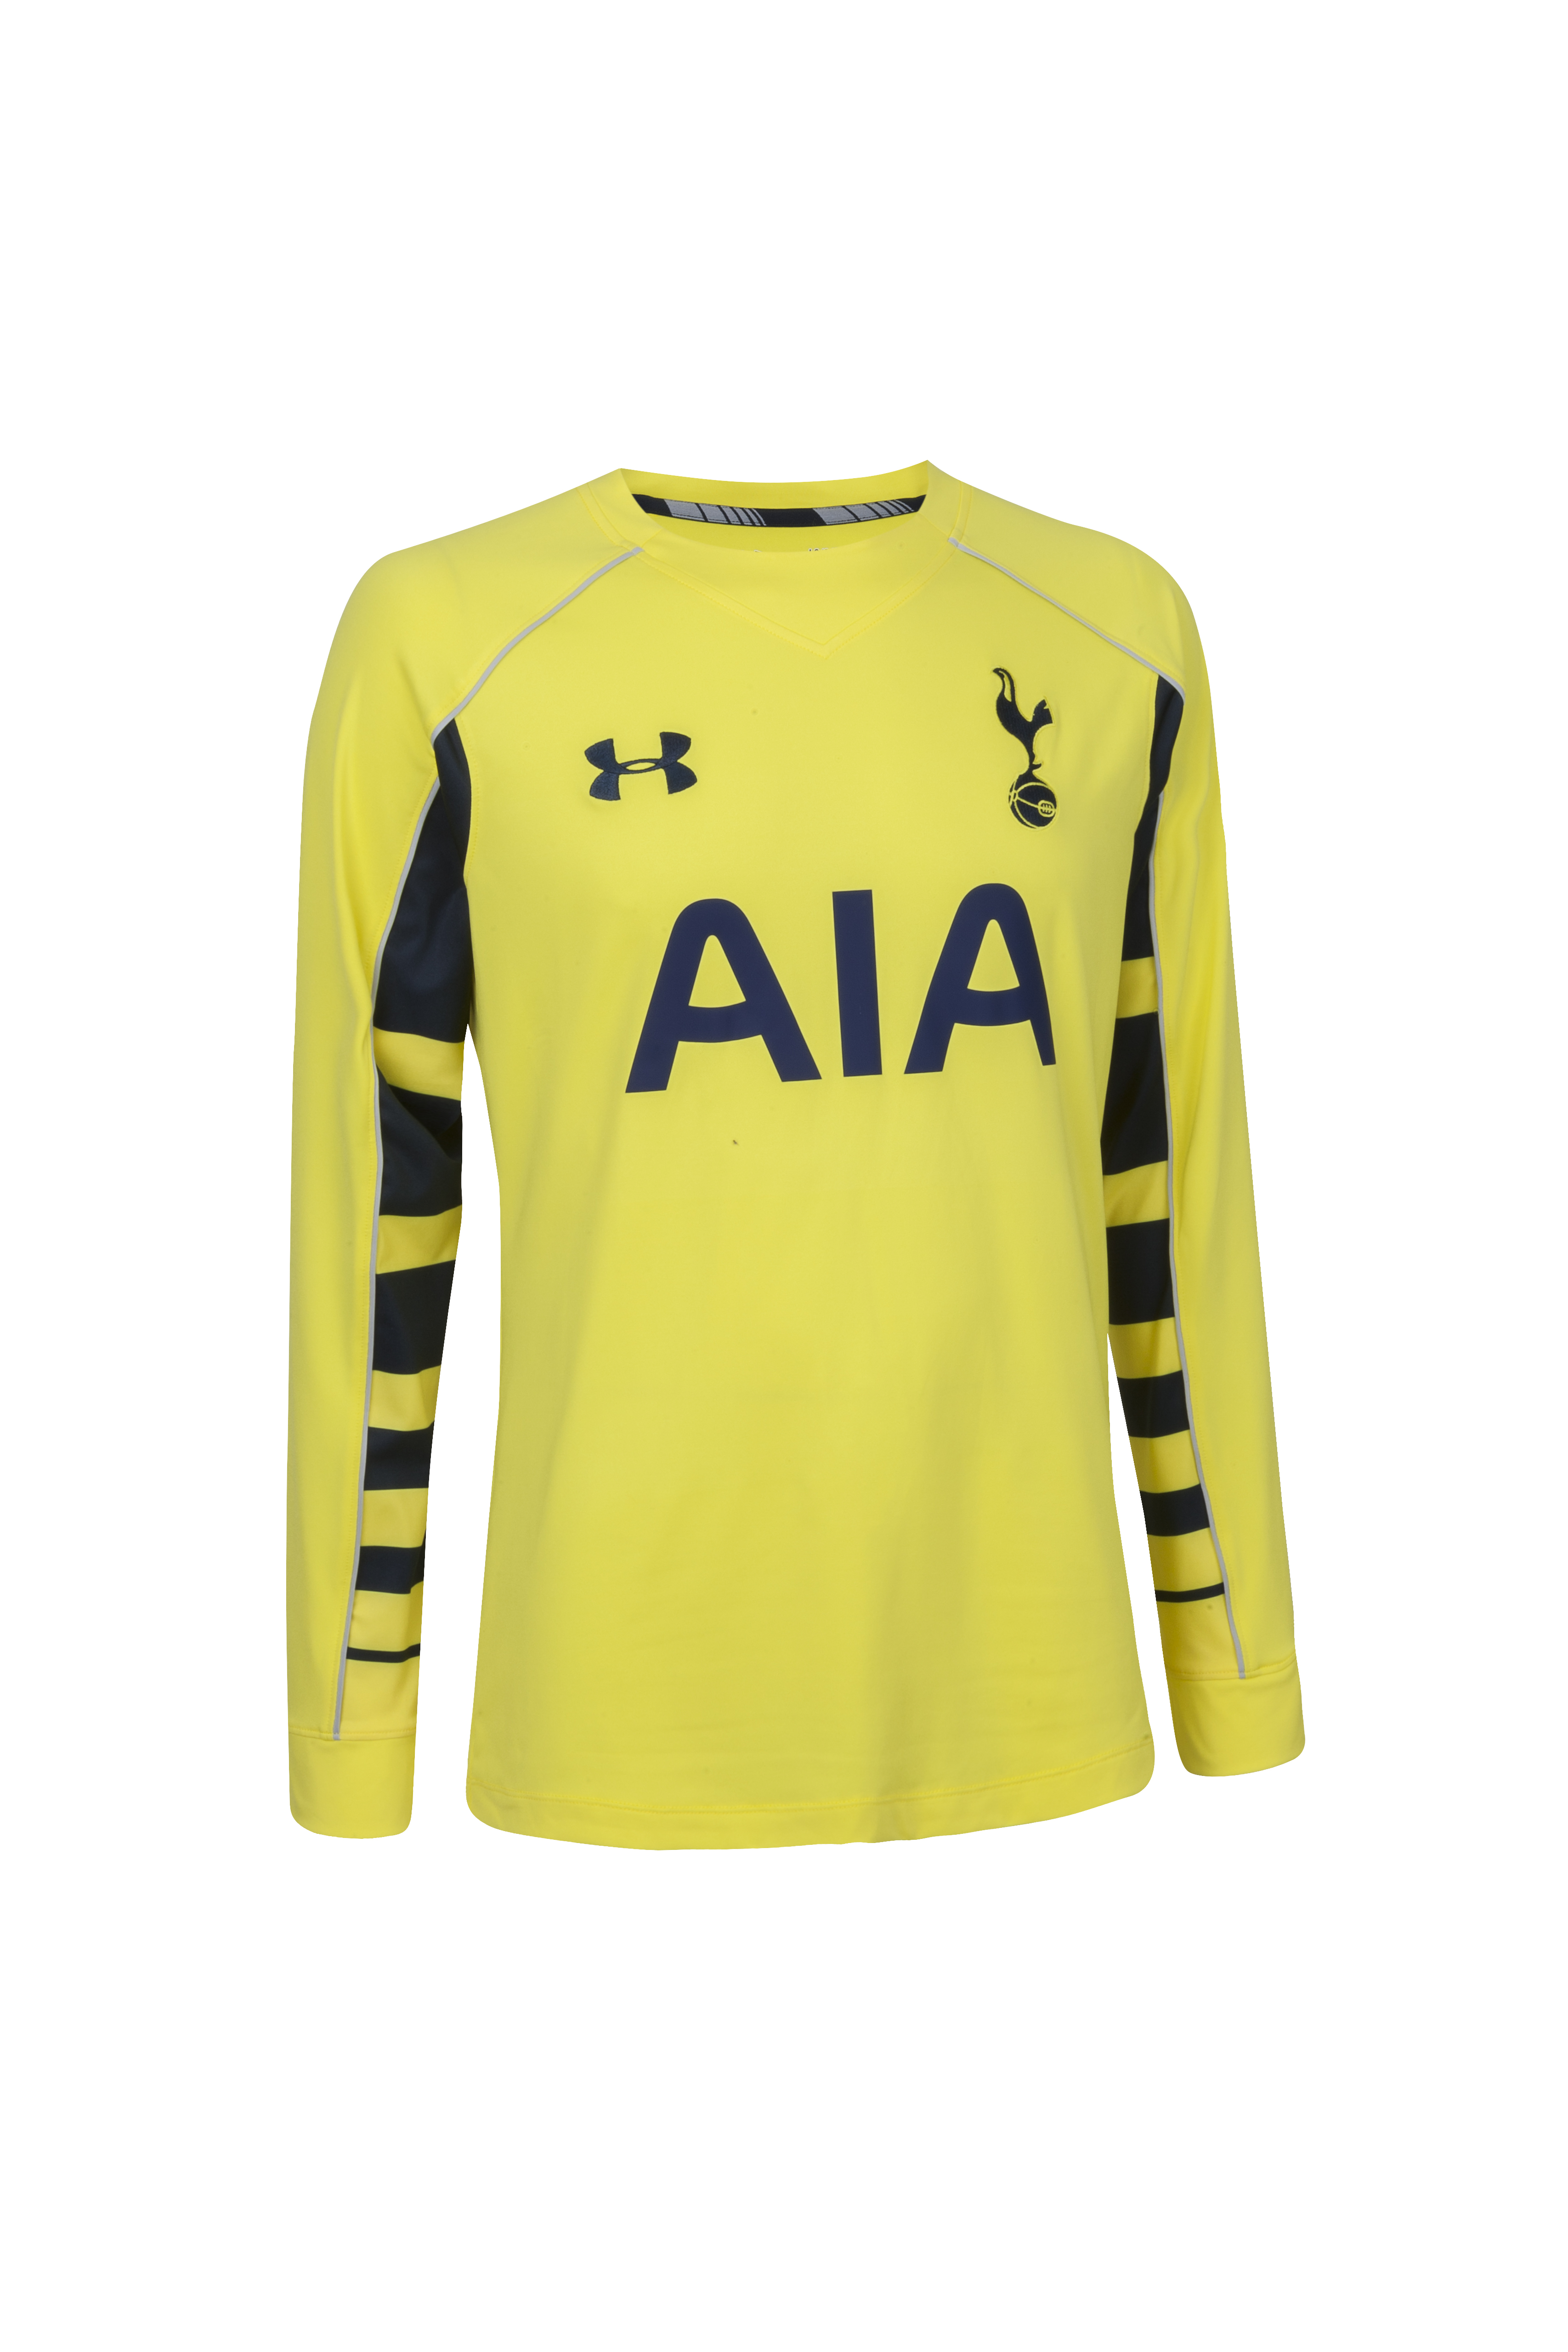 Under Armour and Tottenham Hotspur launch new away kit for 2015 16 ... a43d74be4